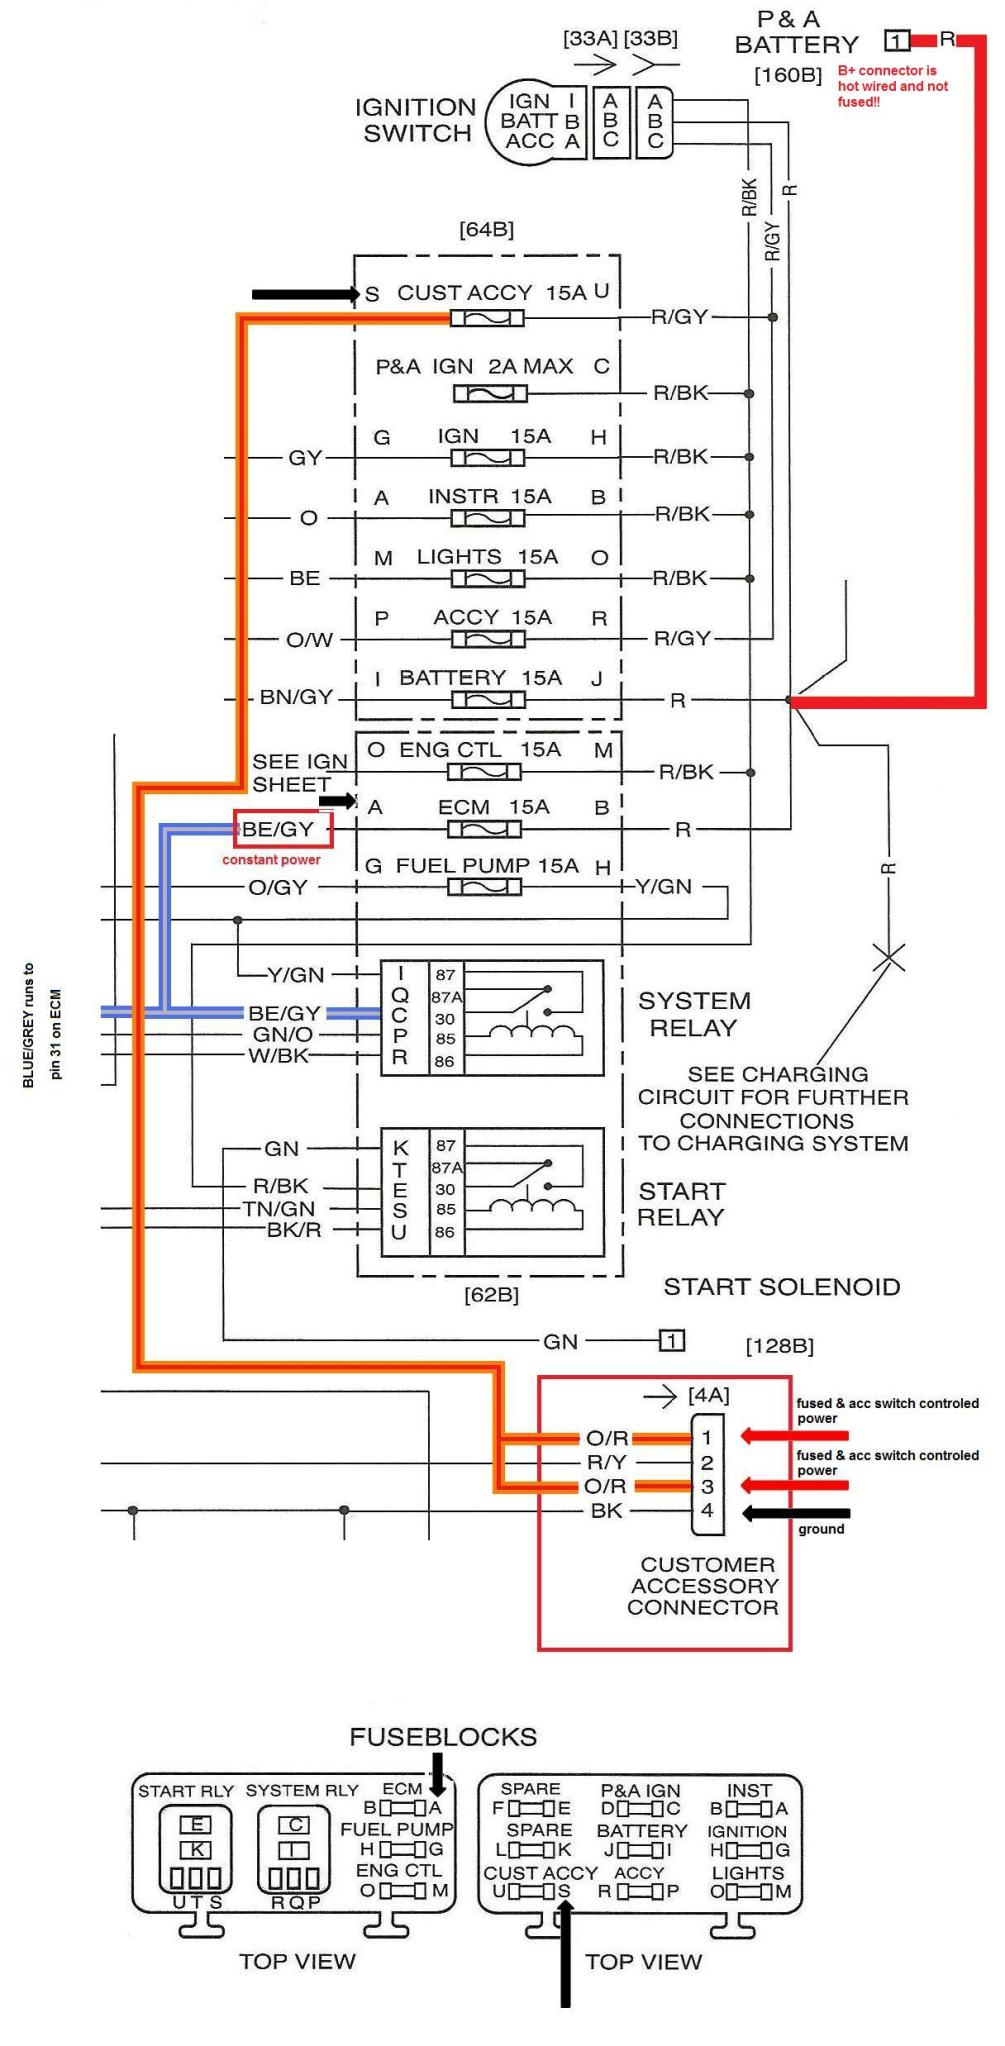 hight resolution of home harley davidson handlebar switch wiring diagram fxdwg dash switch wiring diagram wiring diagram